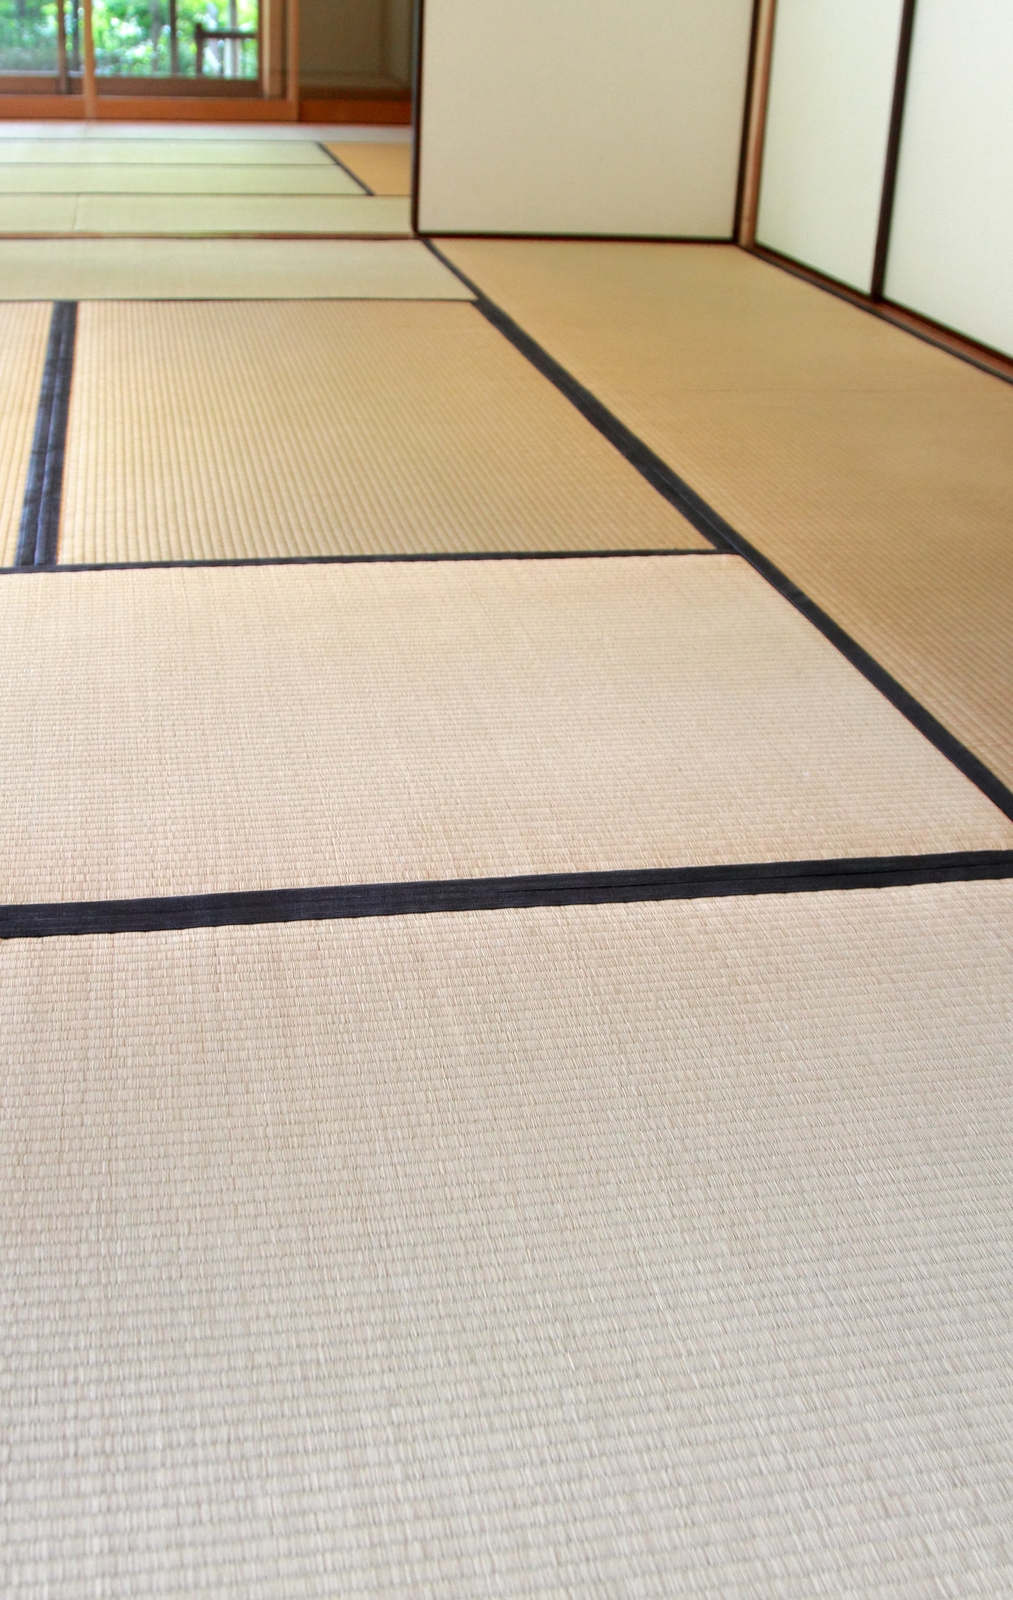 How to take care and clean your tatami room